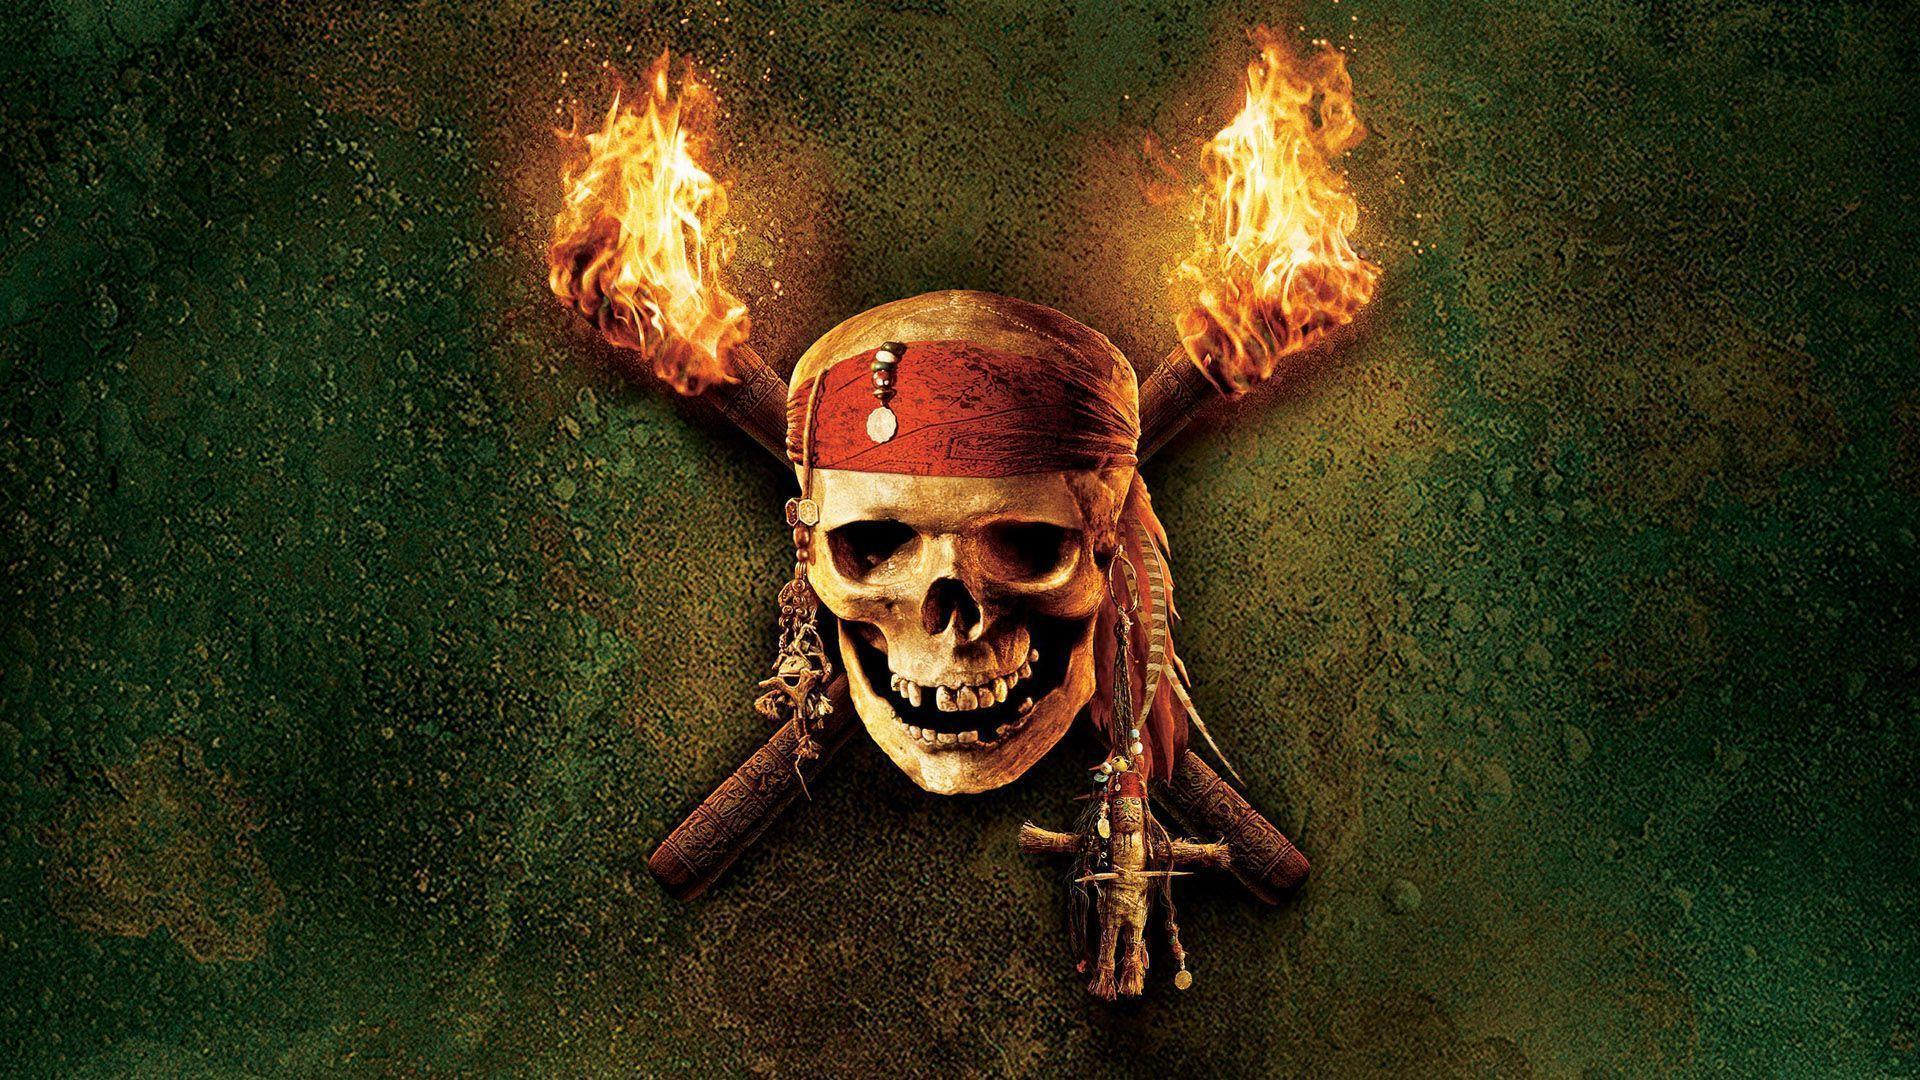 Pirates of the carribean wallpapers wallpaper cave - Pirates hd images ...